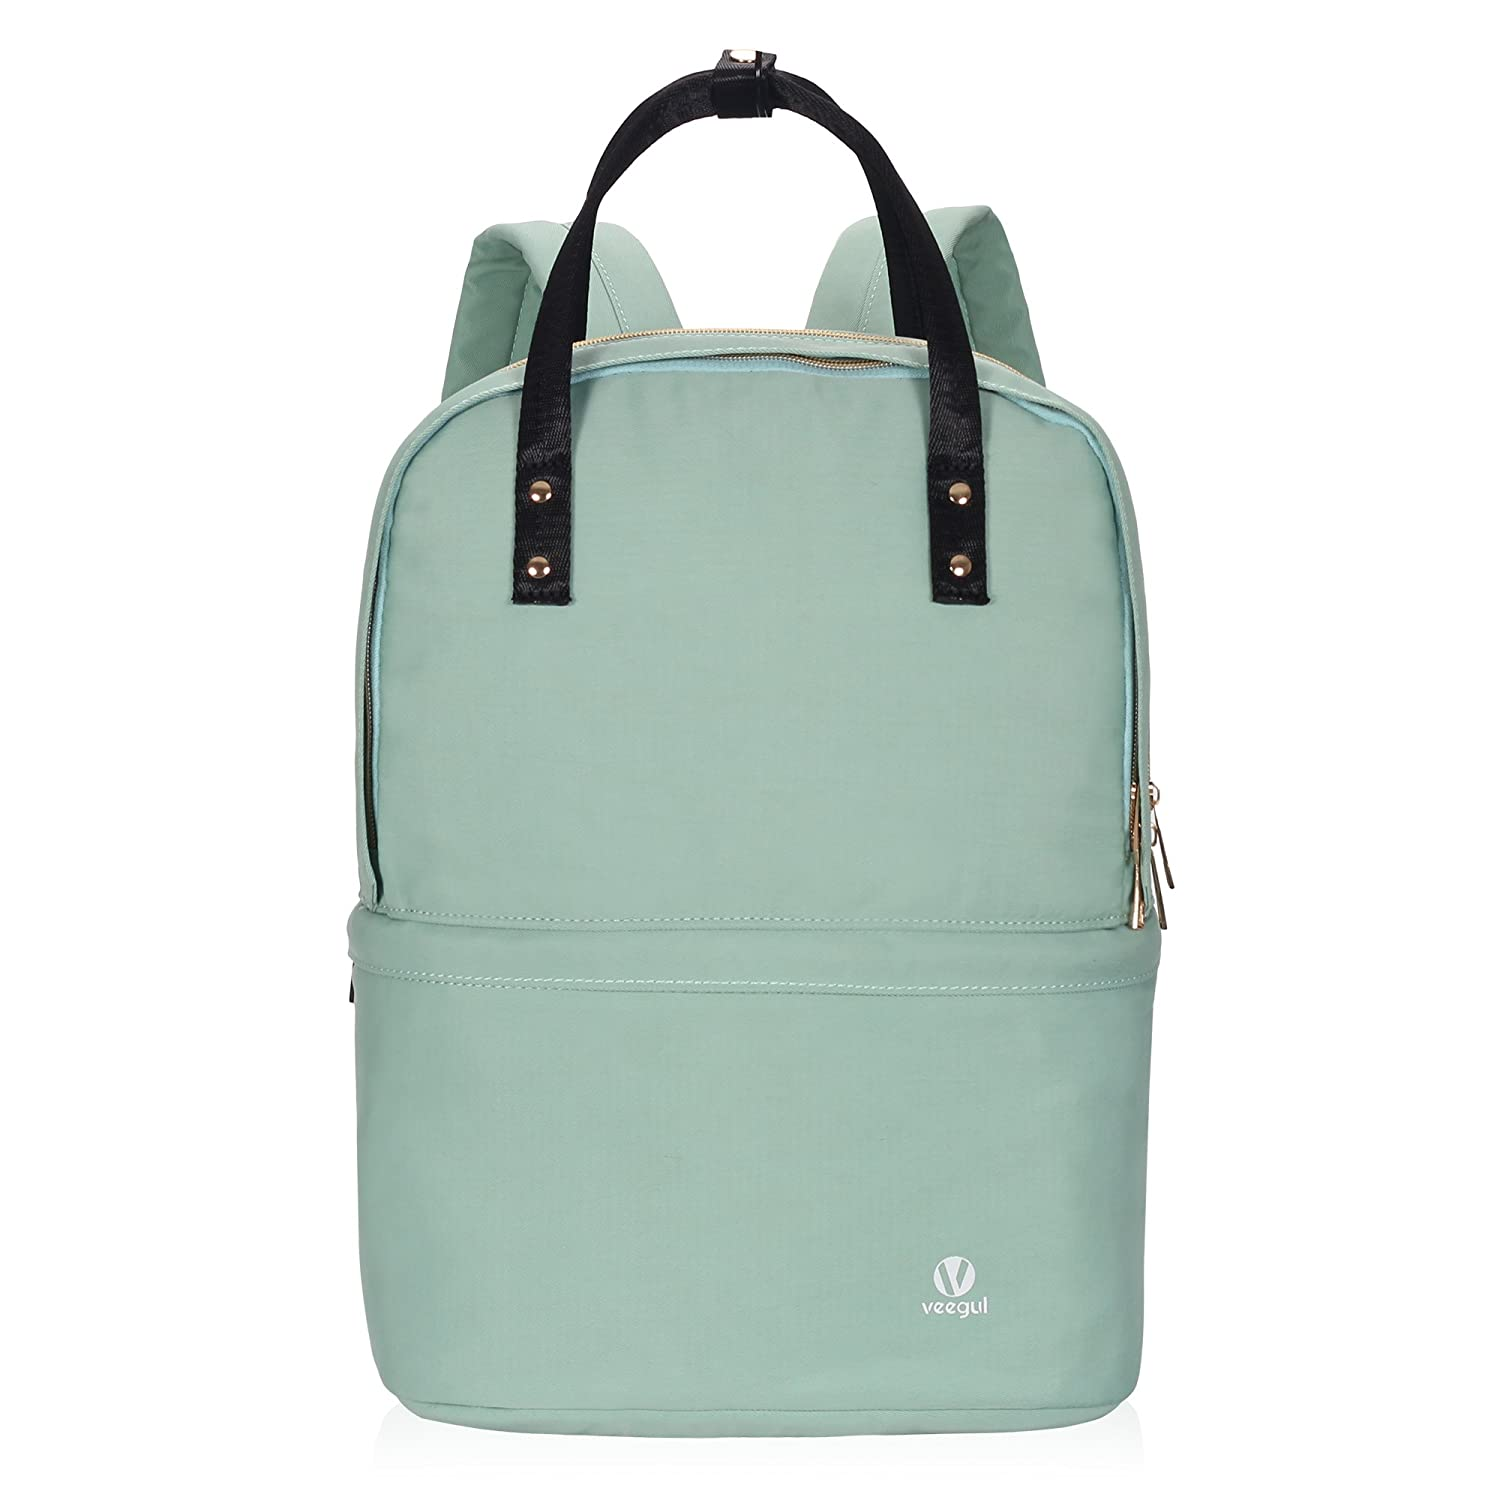 d318020fc30a Veegul Convertible Double Desk Backpack Multifunction Daypack Lightweight  Bookbag 16L Mint Green